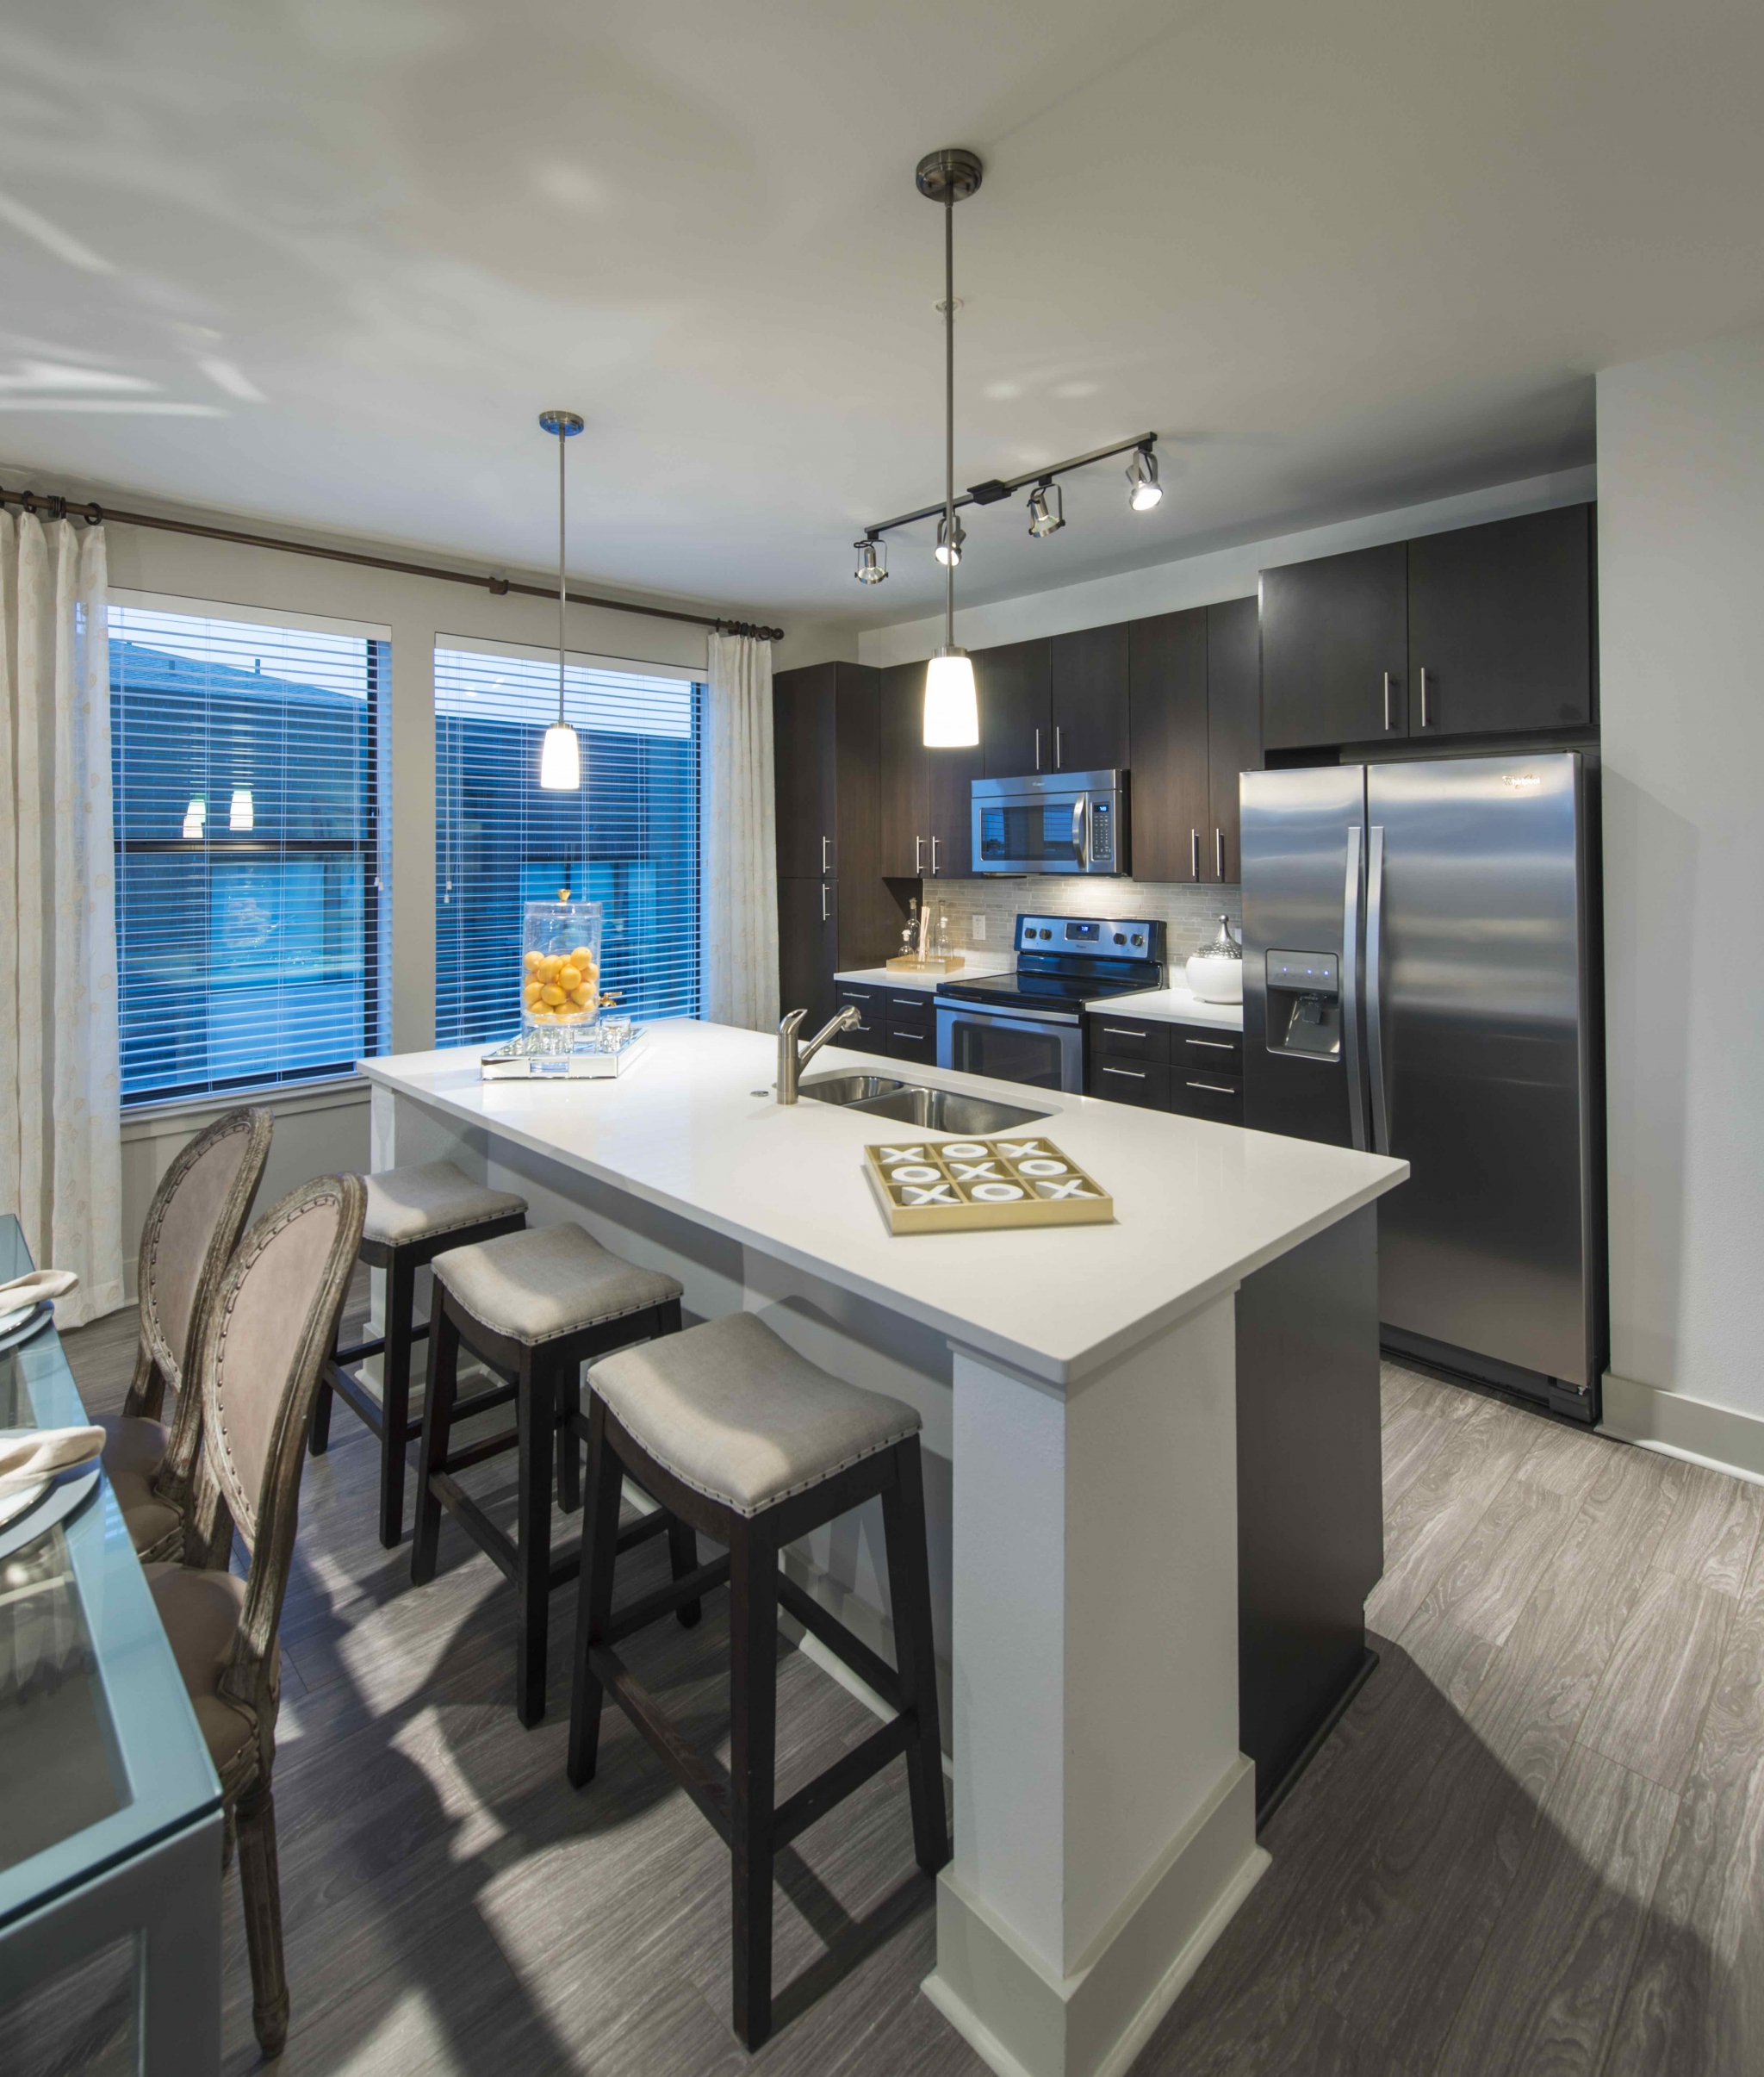 Image of Gourmet kitchens with stainless steel appliances for Viridian Design District